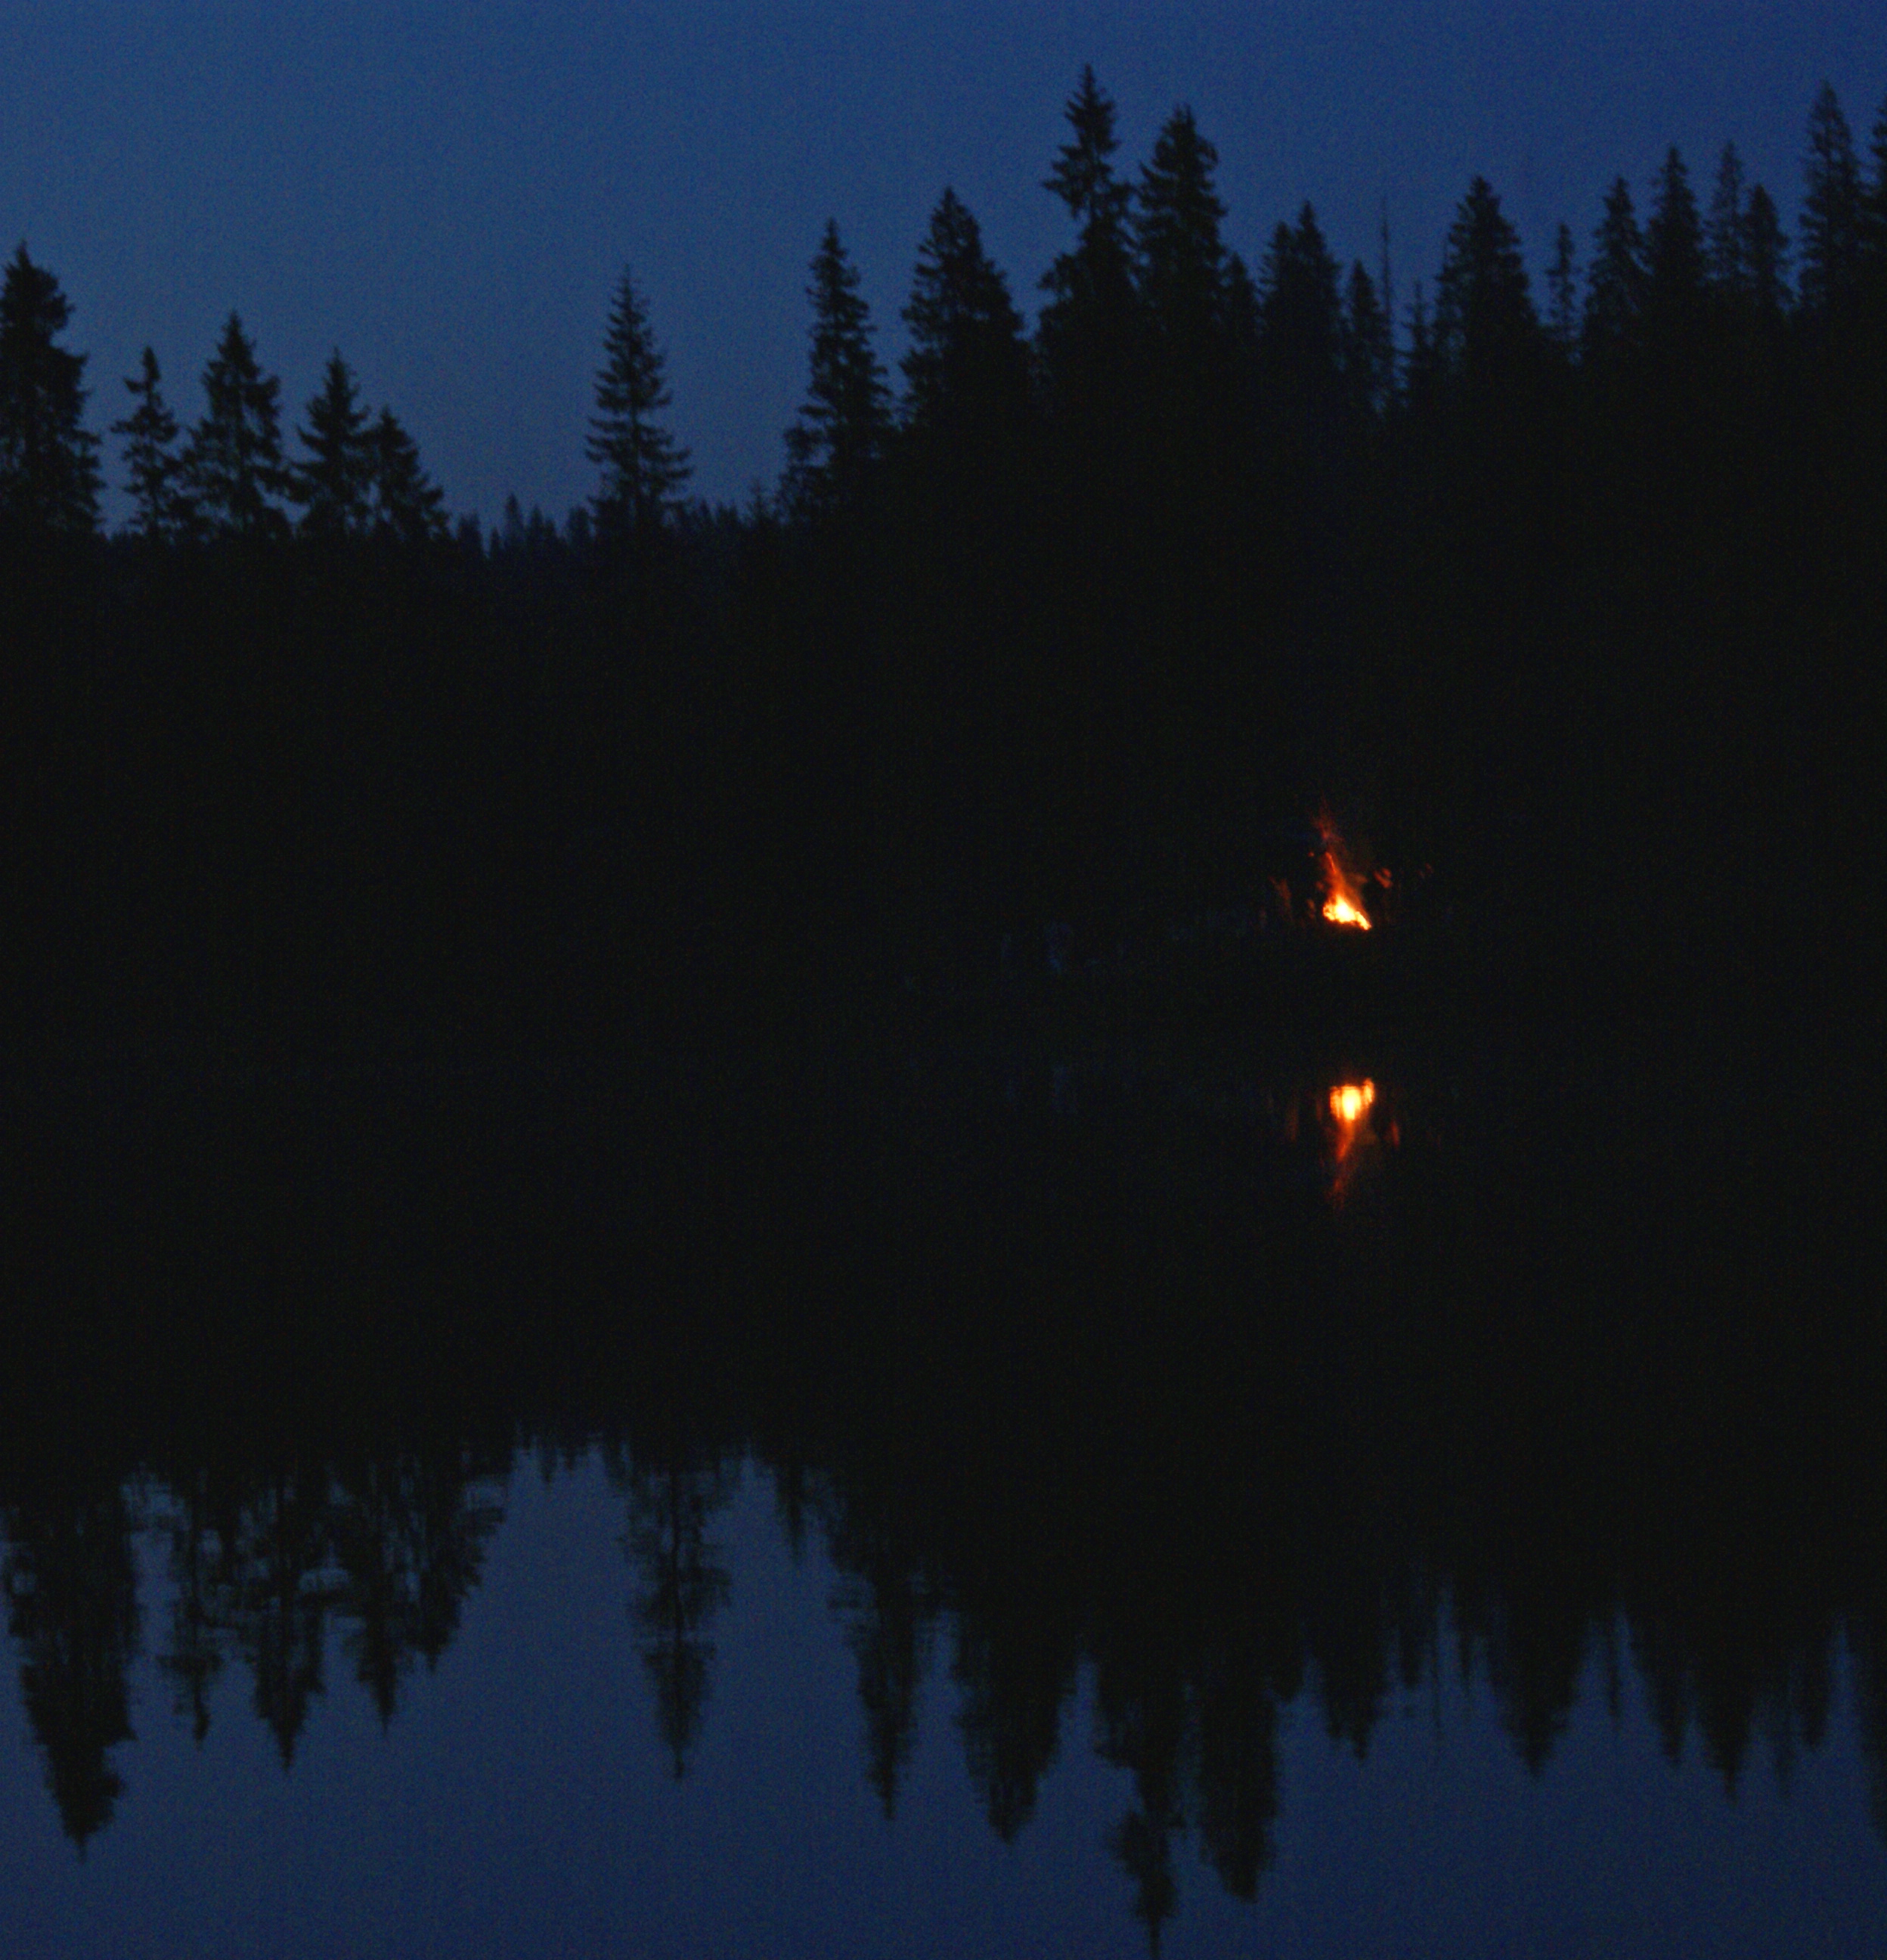 Looking from off shore at the forest at night